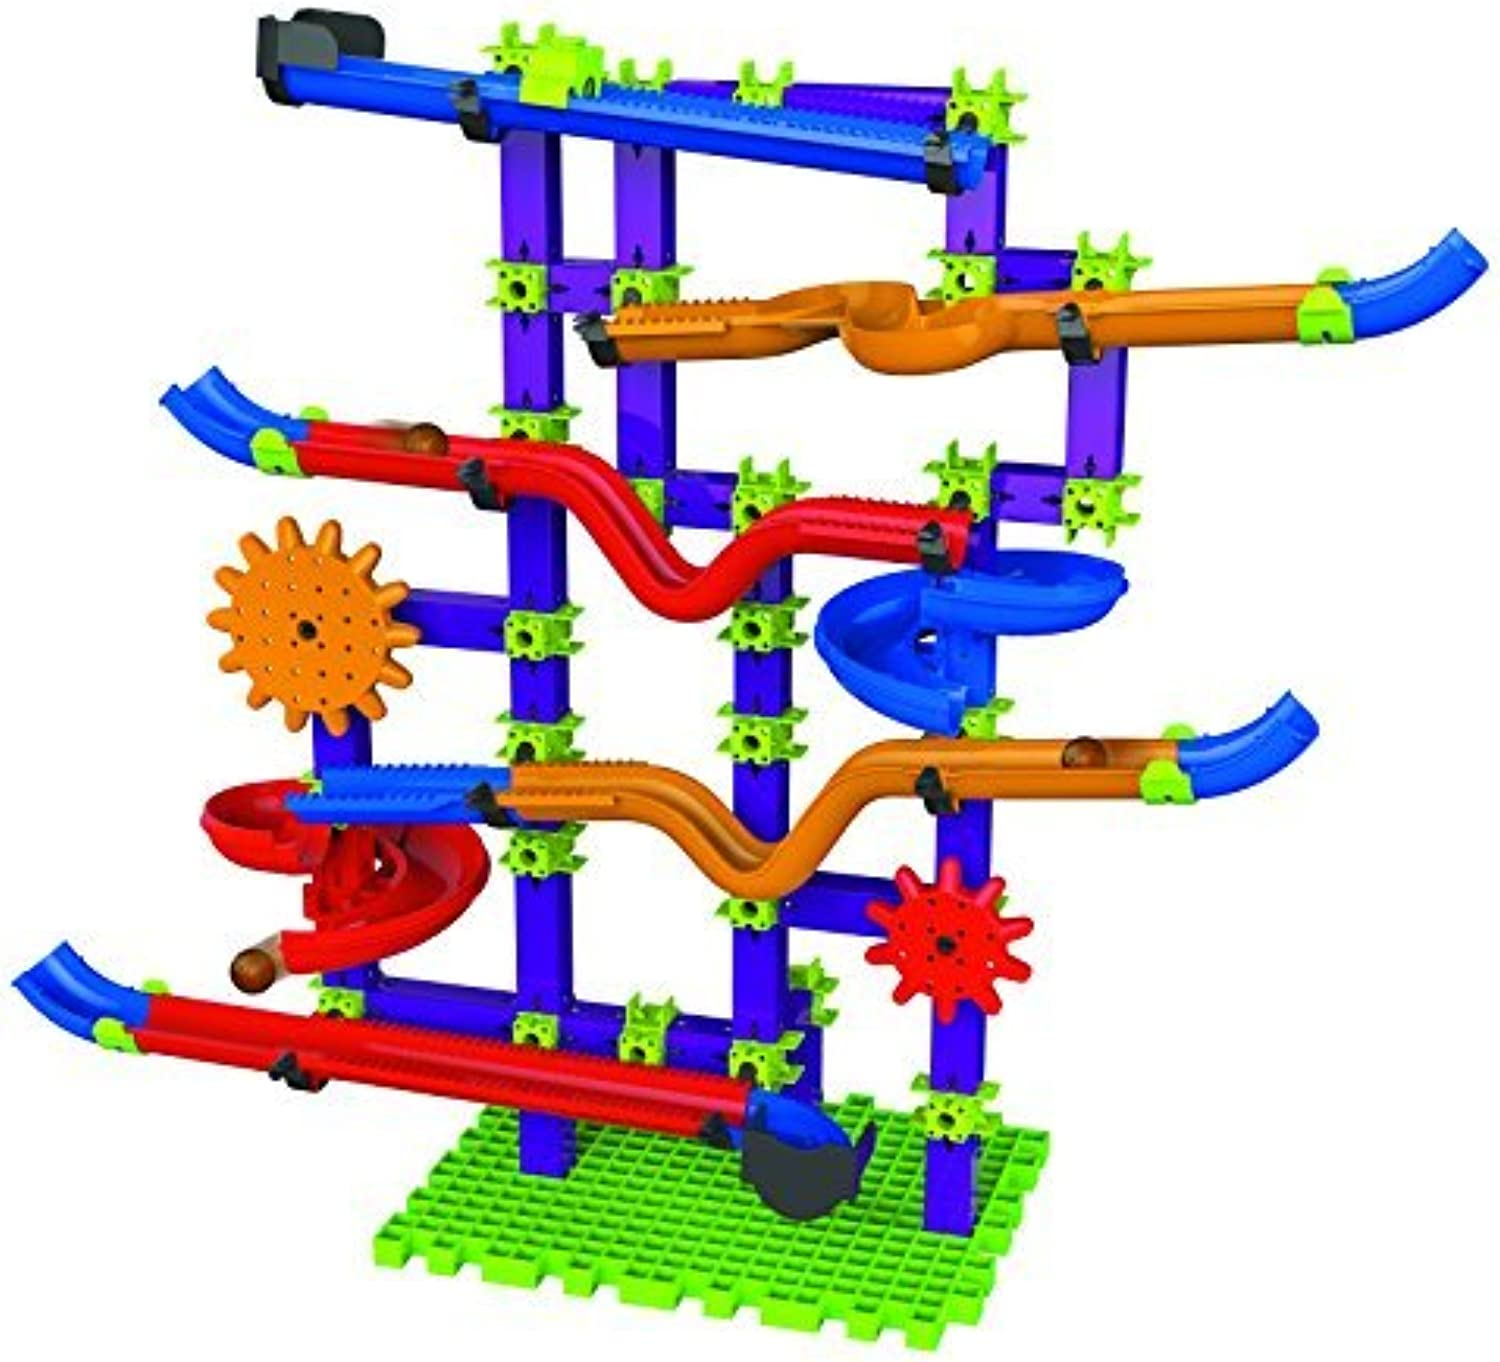 The Learning Journey Techno Gears Marble Mania, Whirler (100+ pcs) by The Learning Journey